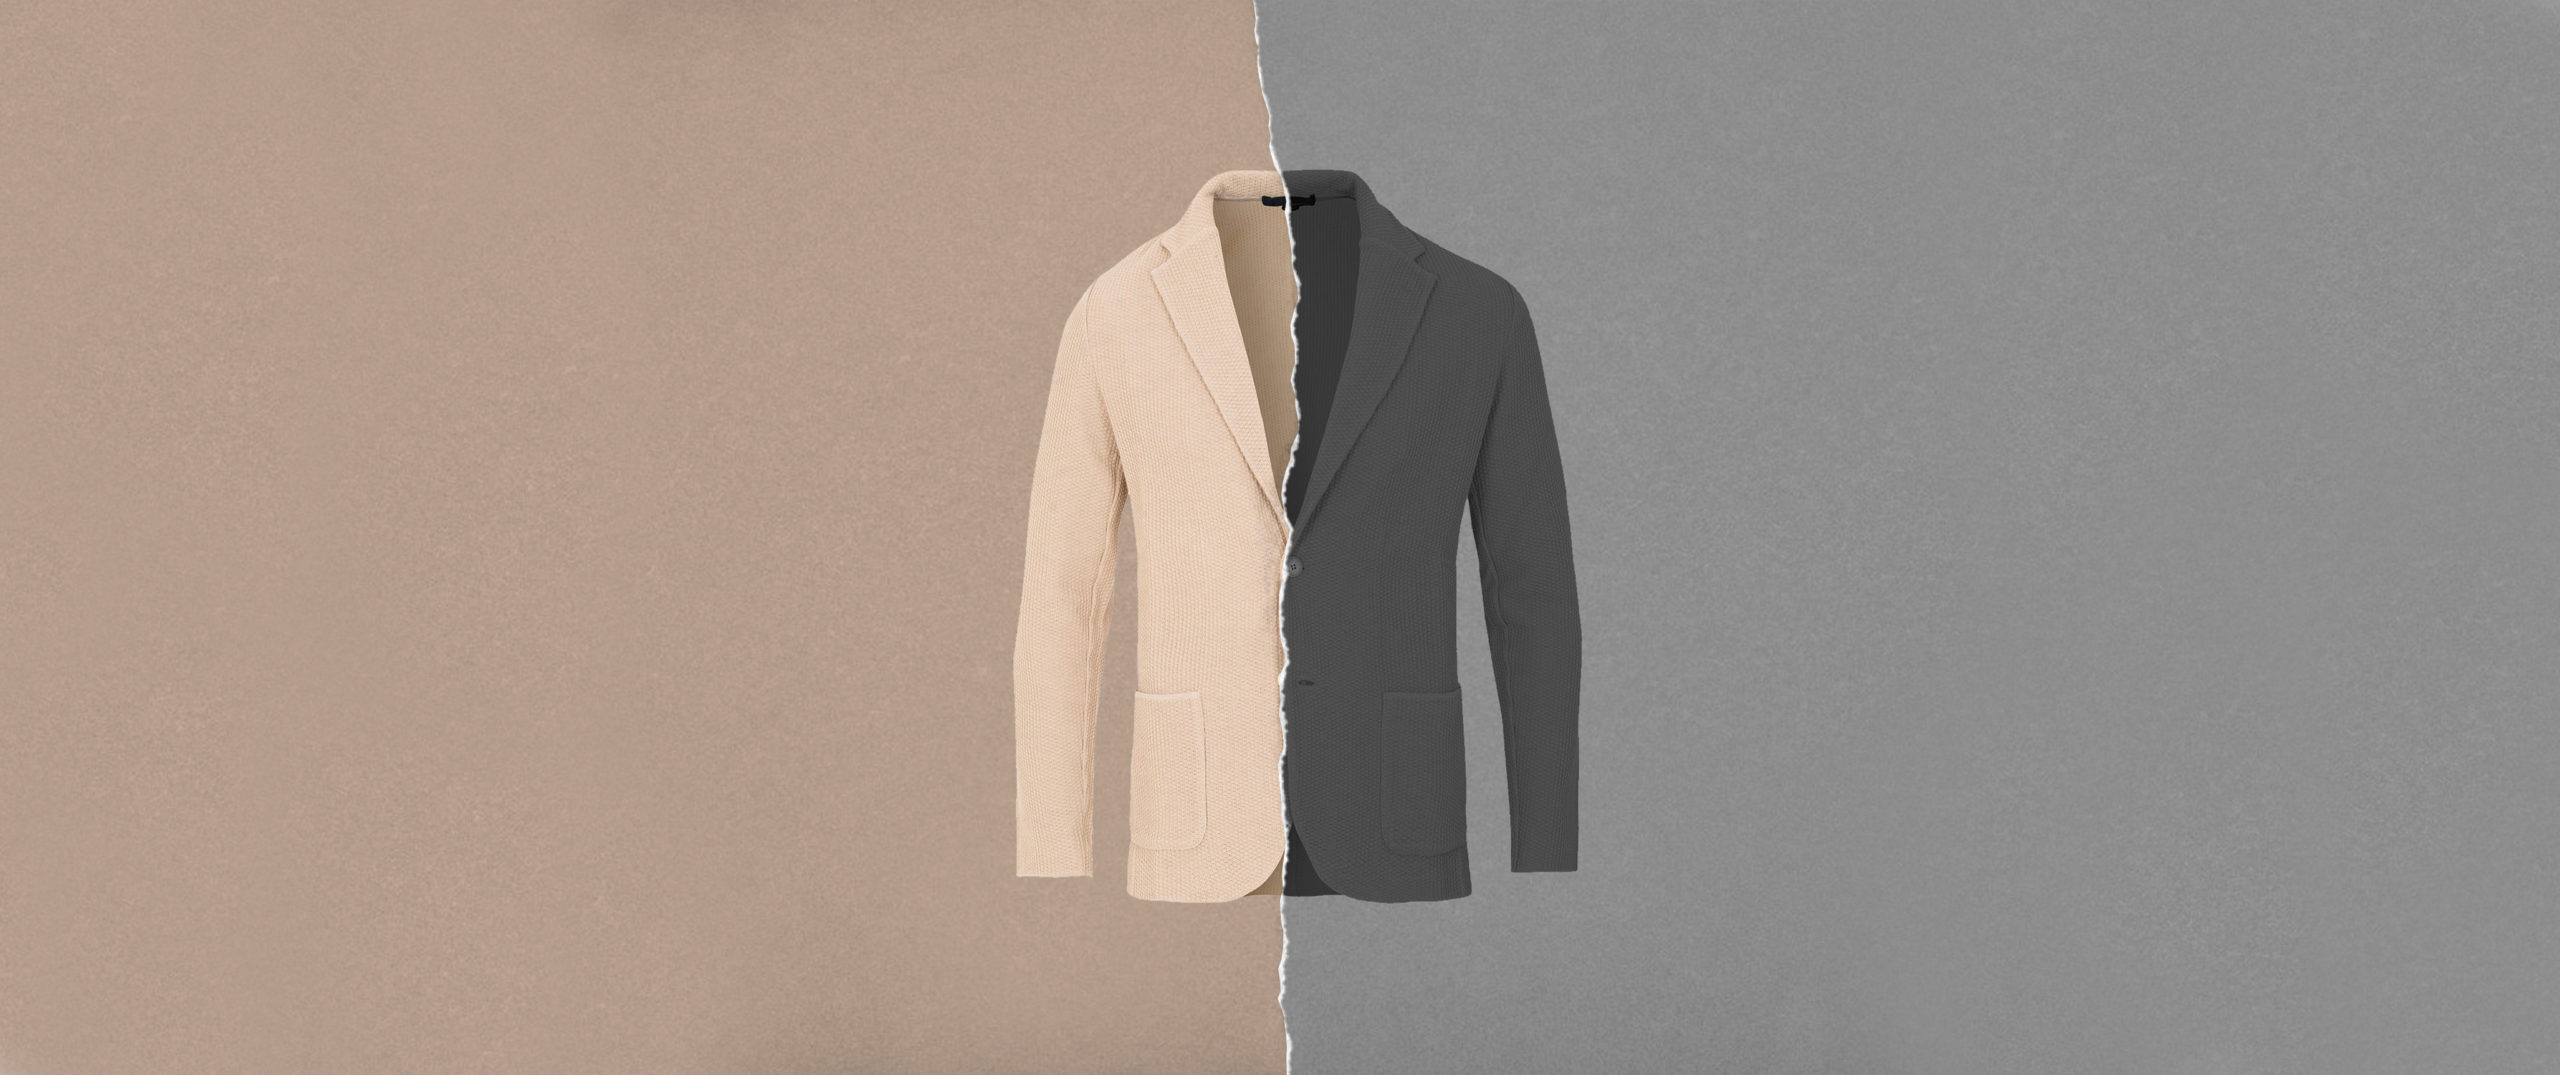 Style wars: Did we really need a knitted blazer? | Gentleman's Journal